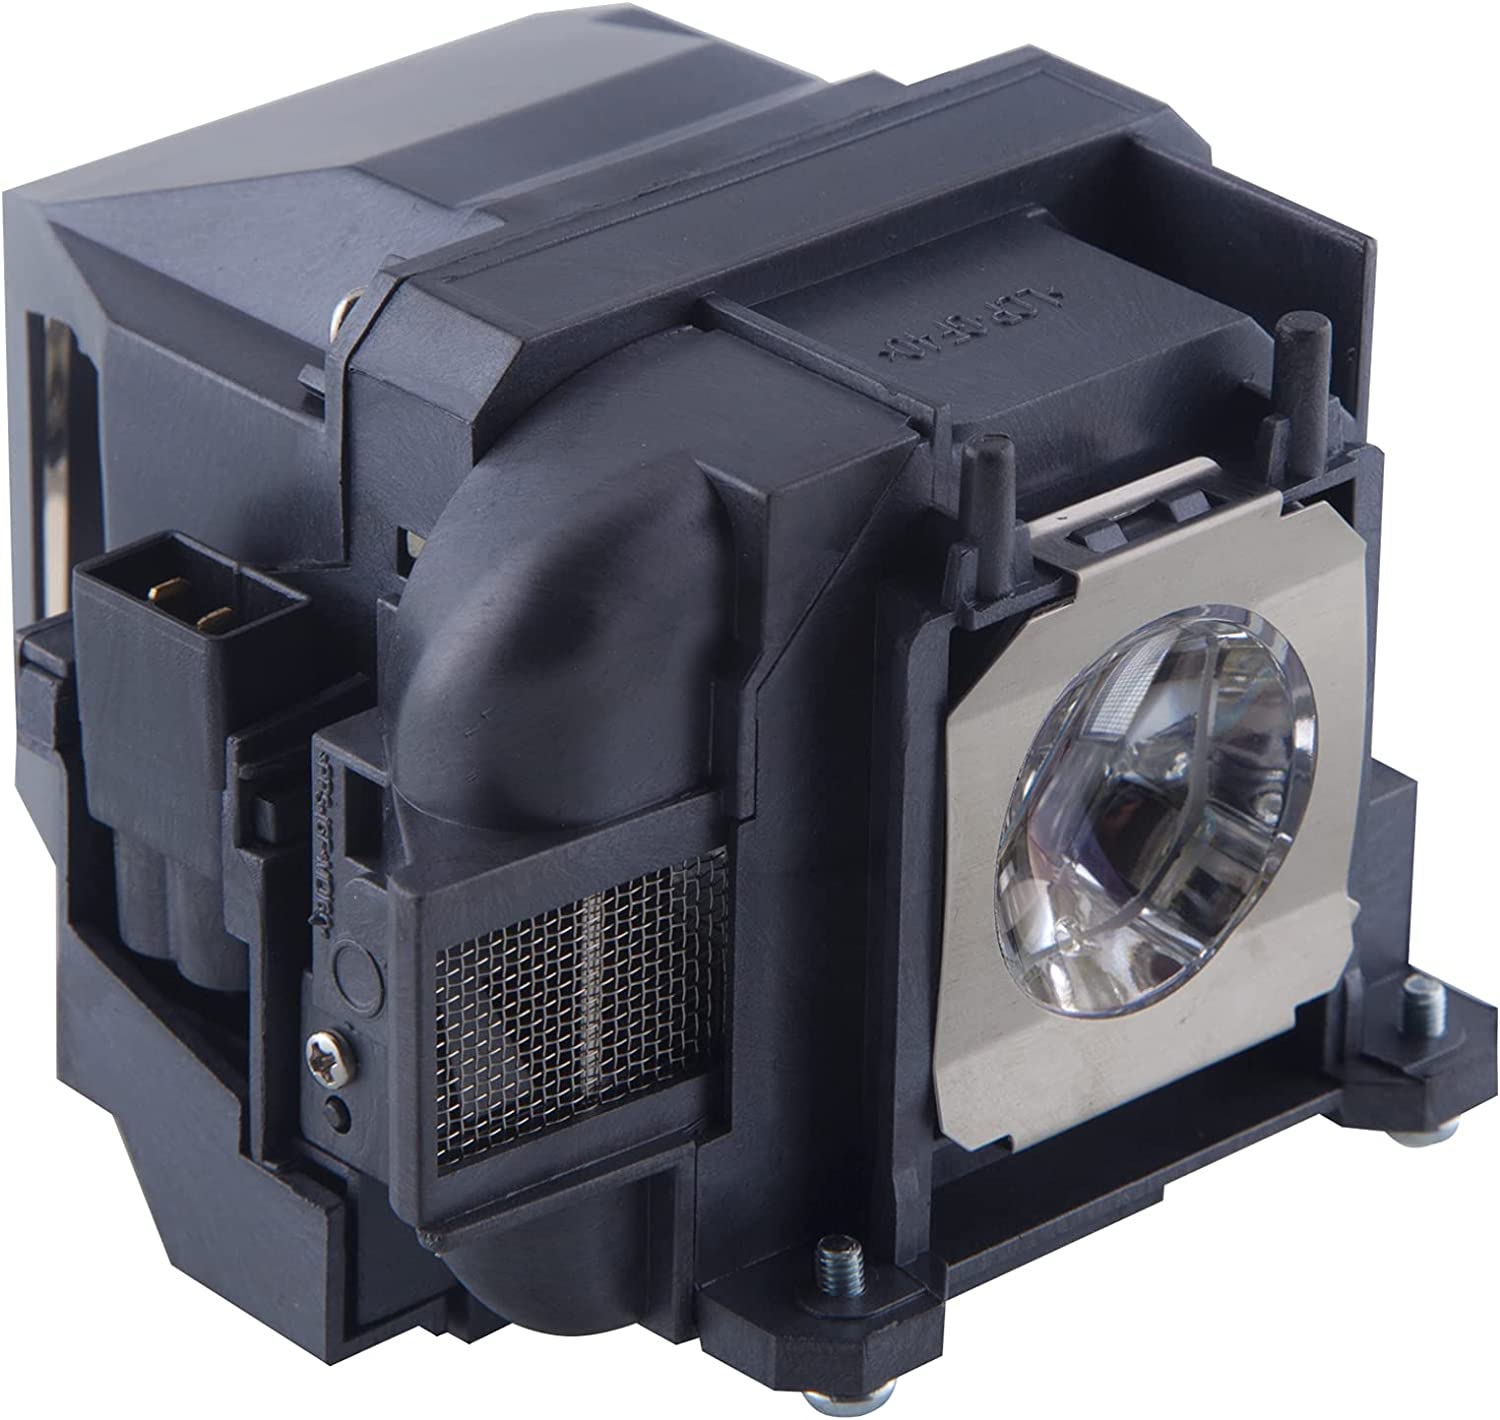 YUHAOYA ELPLP78 ELPLP88 Replacement Projector Lamp Bulb for Epson 2040 1040 2045 740HD 640 EX3240 EX7240 EX9200 EX5250 EX5240 VS240 VS345 VS340 97H 98H 99WH 955WH X27 Lamp Bulb Replacement